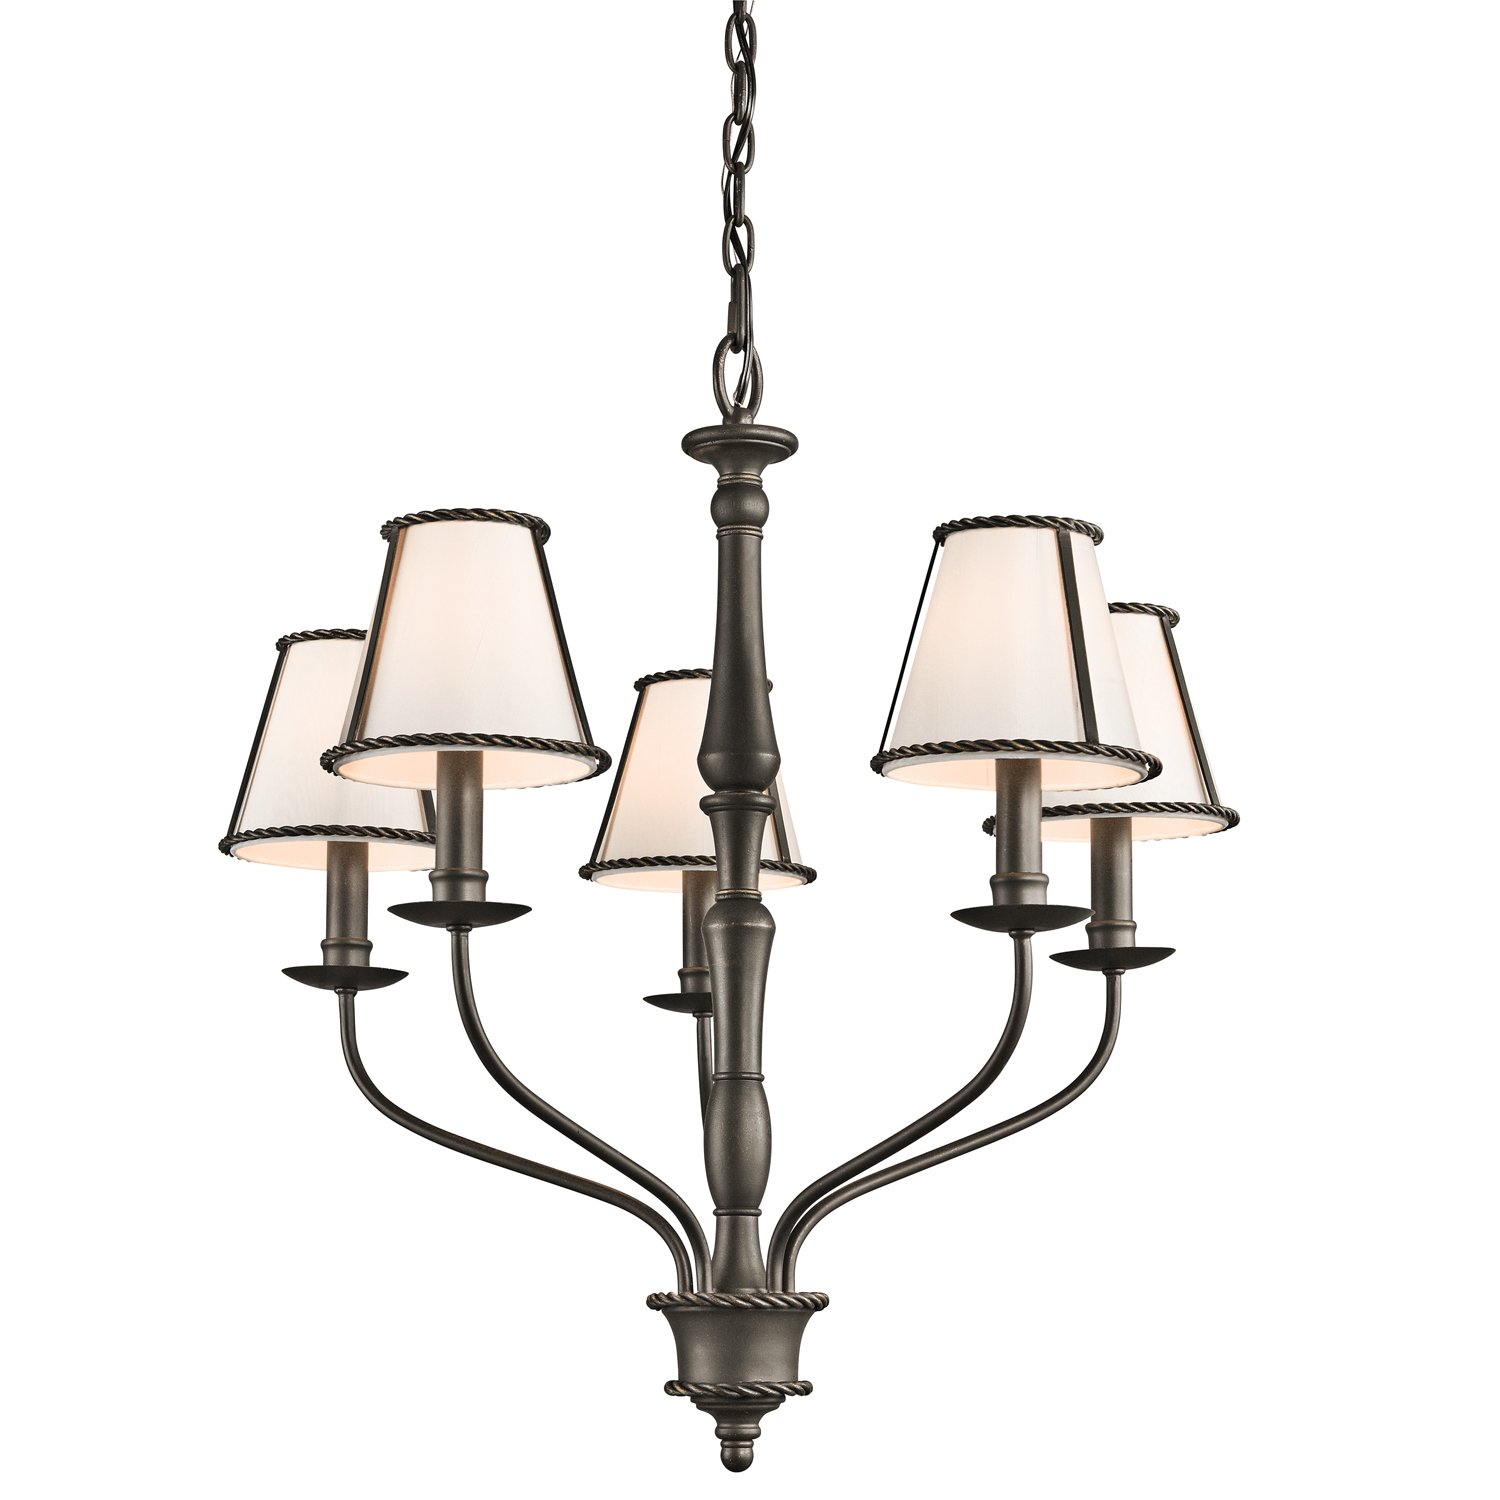 Kichler 43339OZ Donington 5-Light Chandelier, Olde Bronze Finish with Ivory Fabric Shades